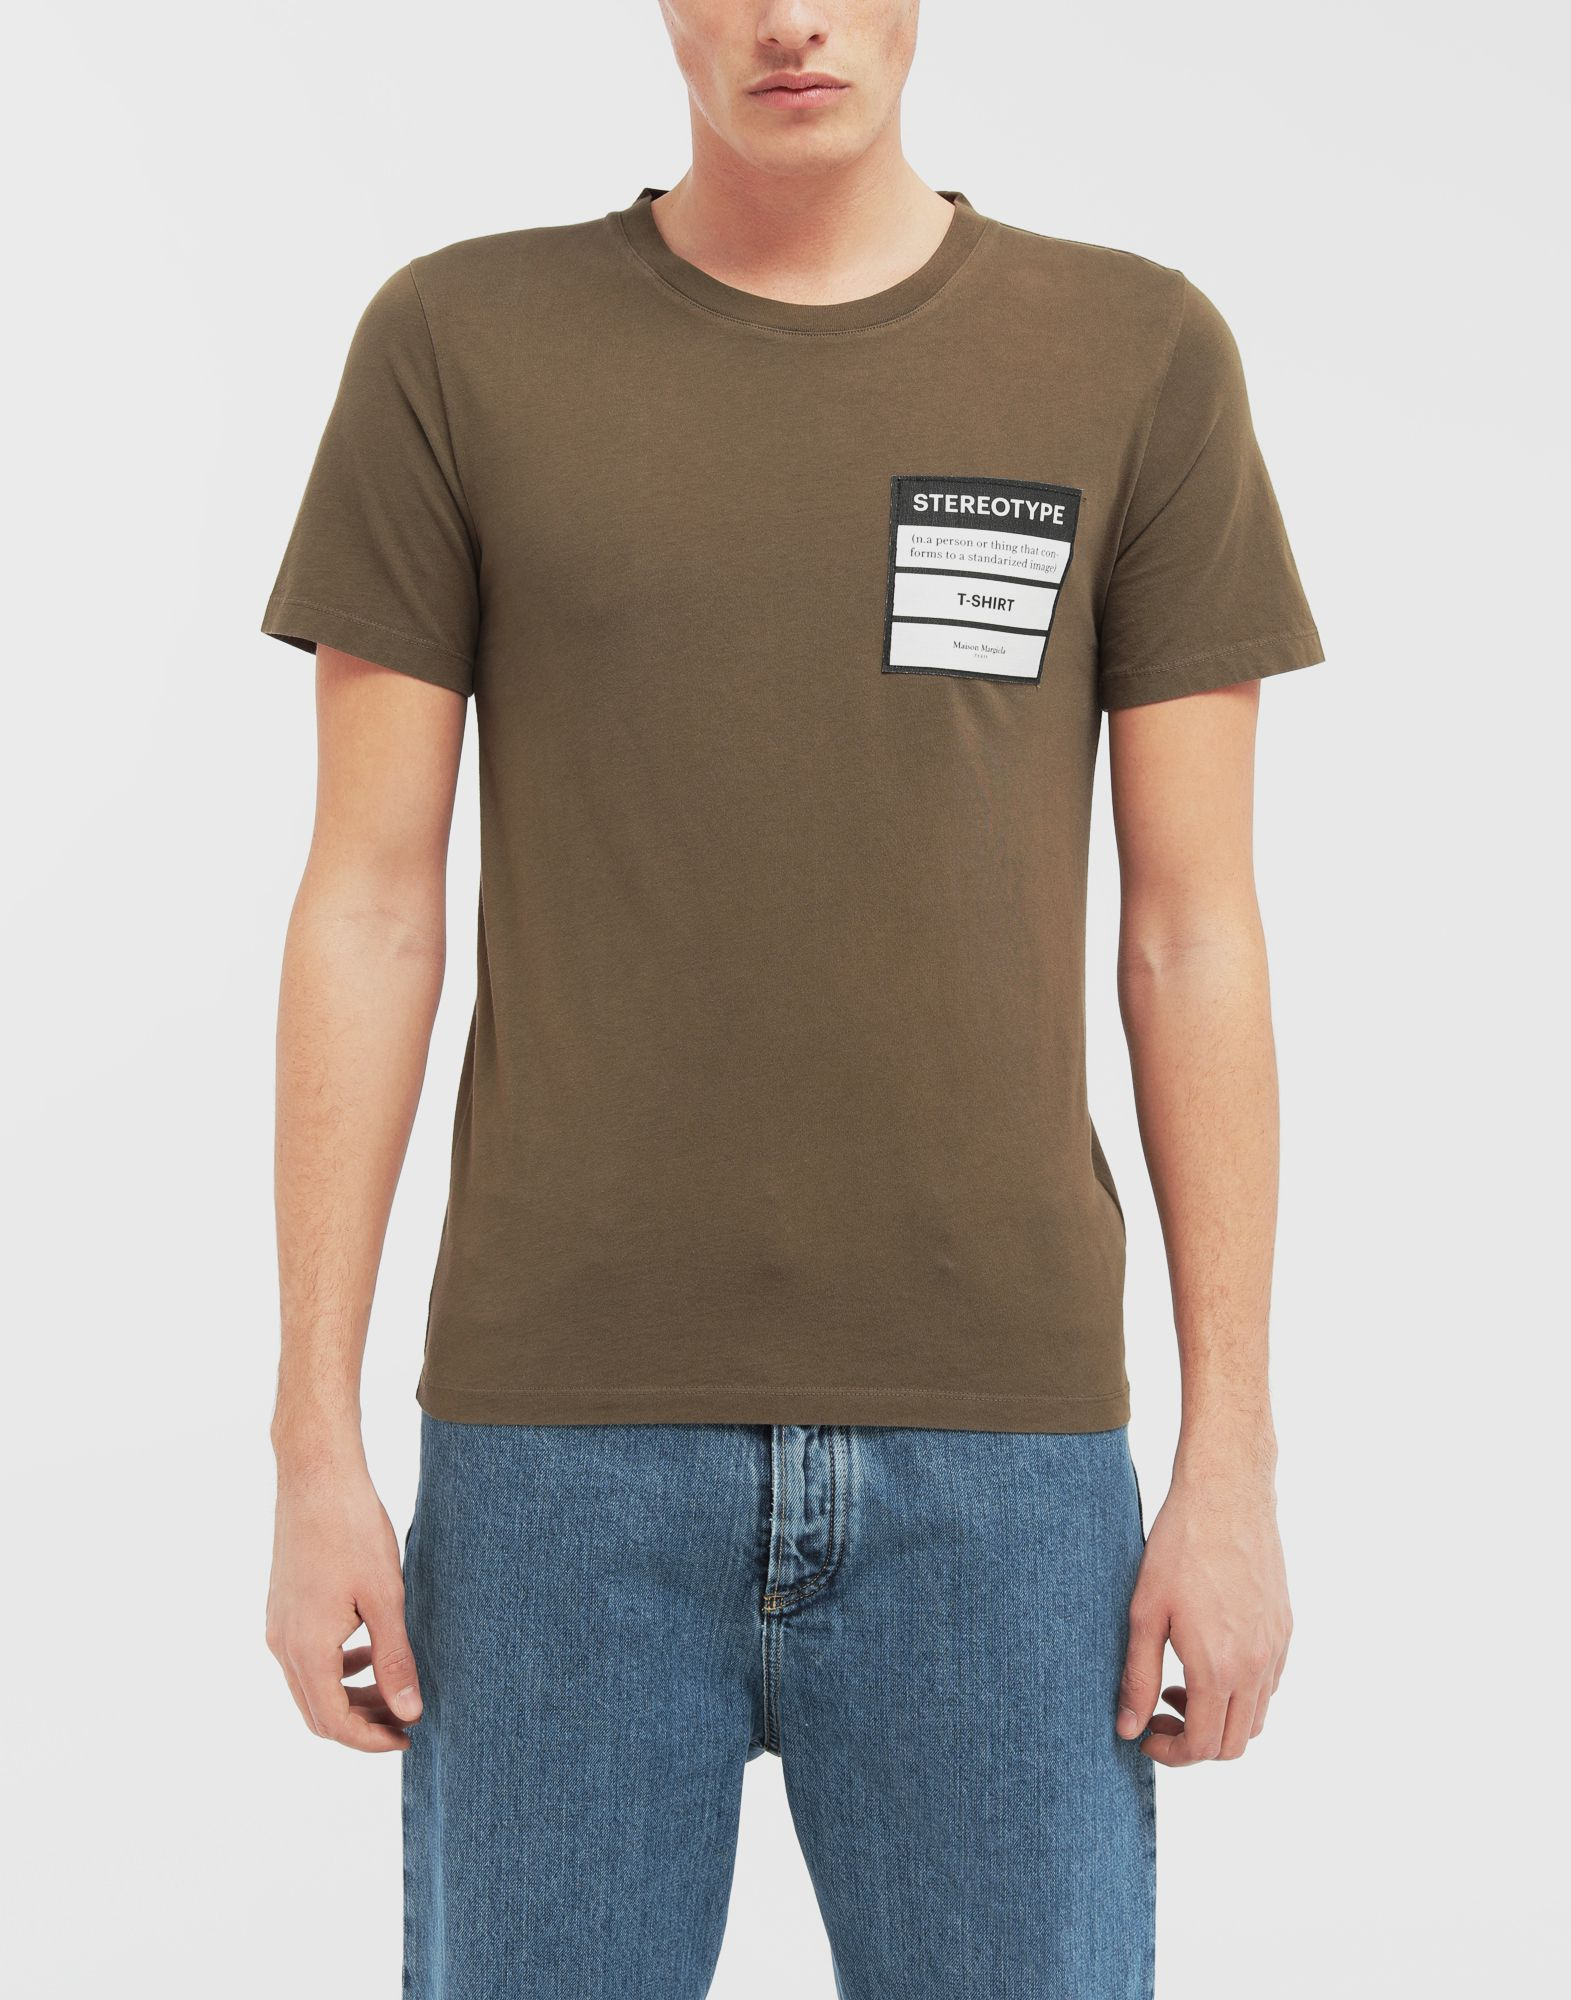 MAISON MARGIELA Stereotype T-shirt Short sleeve t-shirt Man r